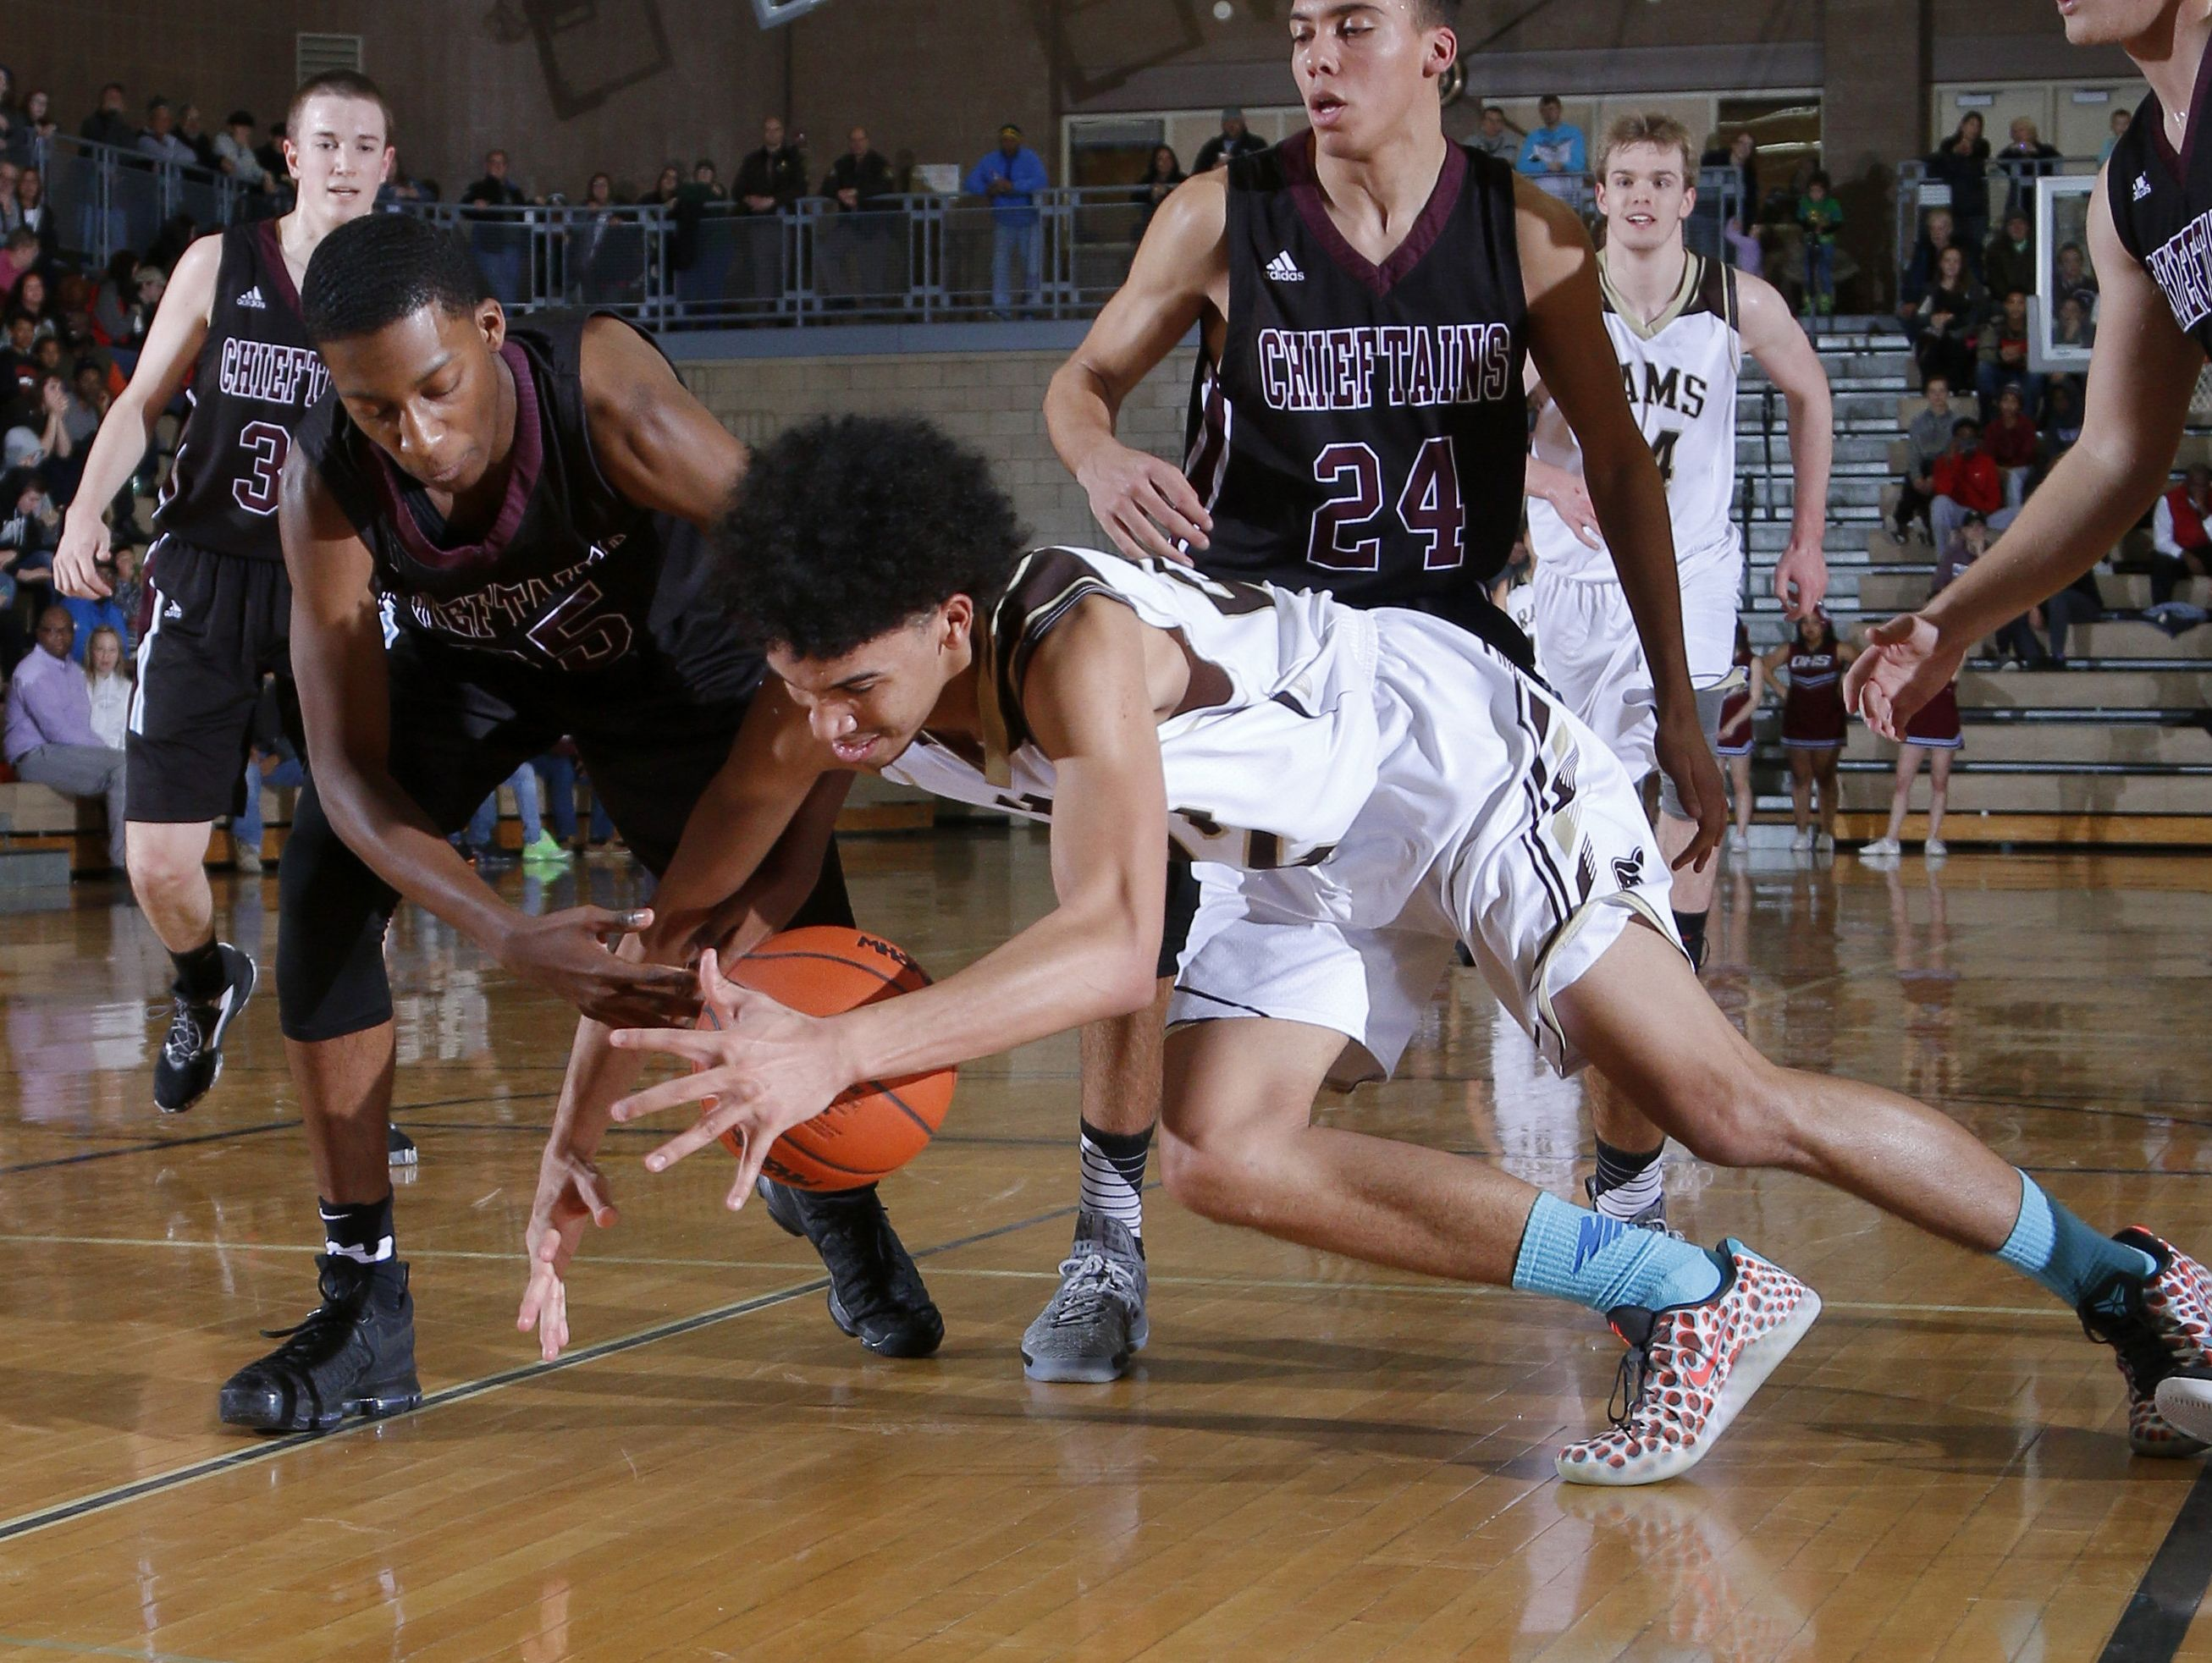 Holt's Deandre Whetstone, right, and Okemos' Collyn Richardson dive for a loose ball Friday, Feb. 10, 2017, in Holt, Mich. Holt won 94-86 in overtime.